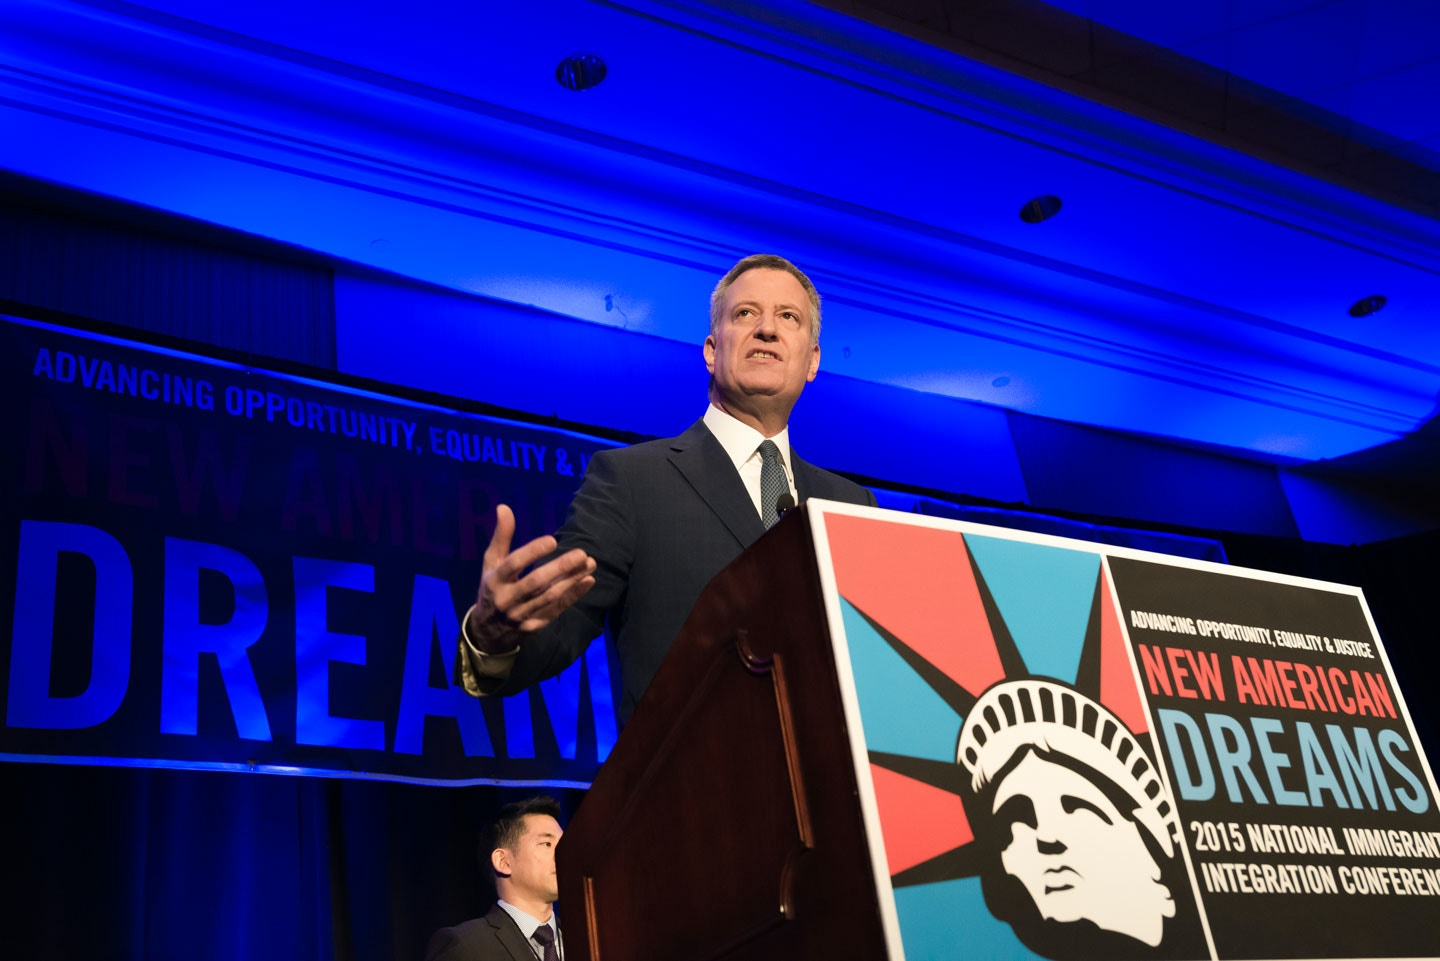 NEW YORK CITY - DECEMBER 14, 2015 - Mayor Bill de Blasio delivers remarks at the National Immigration Integration Conference. On the second day of the National Immigration Integration Conference held at the Marriott Hotel in Downtown Brooklyn, NYC Mayor Bill de Blasio delivered a keynote speech, announcing the city's commitment to welcoming newly-arrived Syrian refugees and the advent of the ActionNYC program seeking nationwide immigration reform. (Photo by Albin Lohr-Jones / Pacific Press) *** Please Use Credit from Credit Field ***